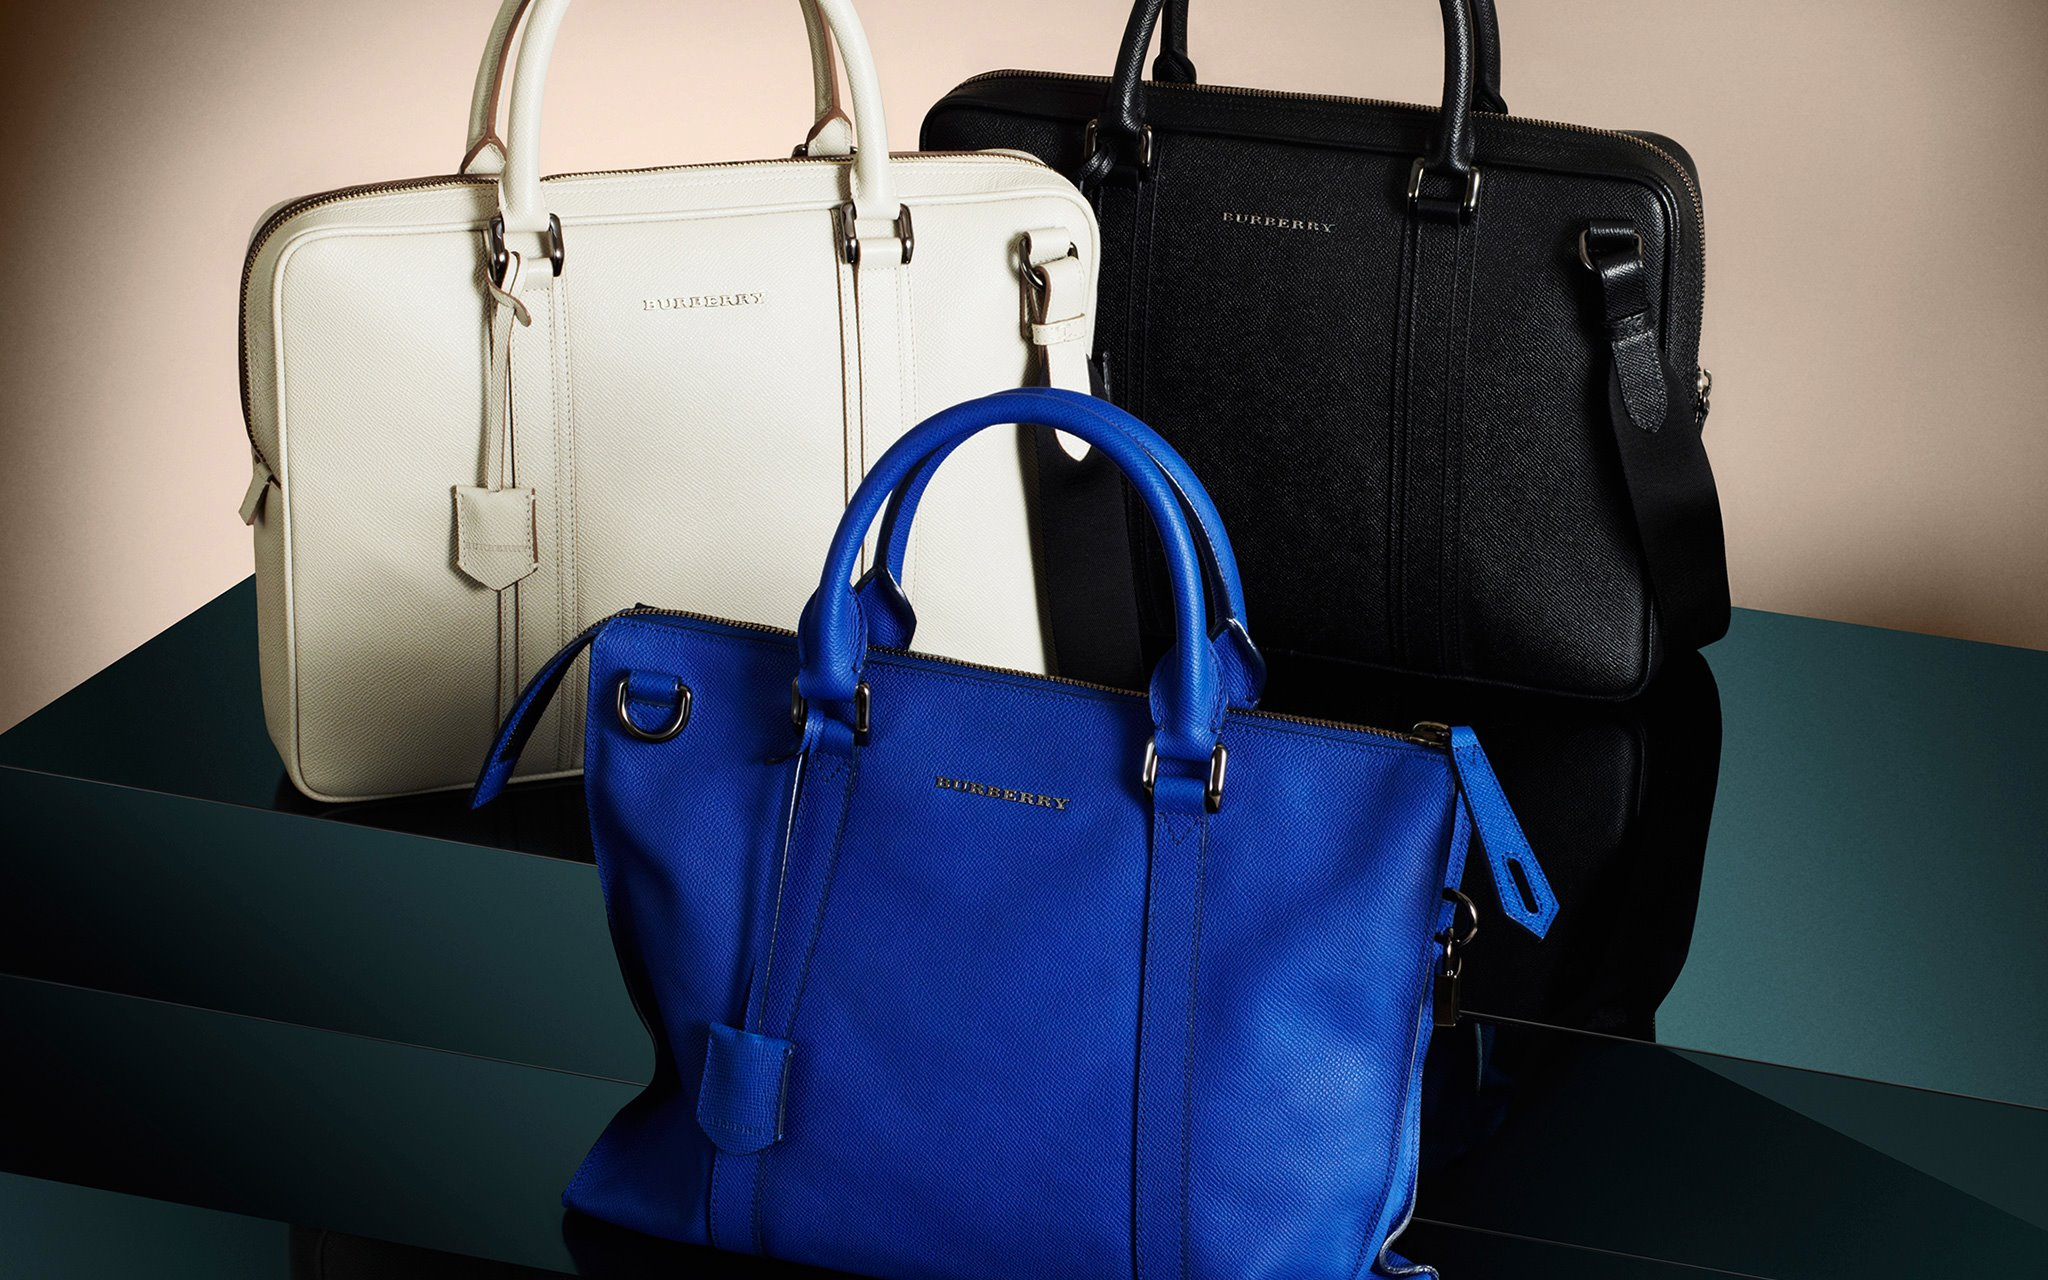 Burberry Accessories Fall Winter 2013 (5)